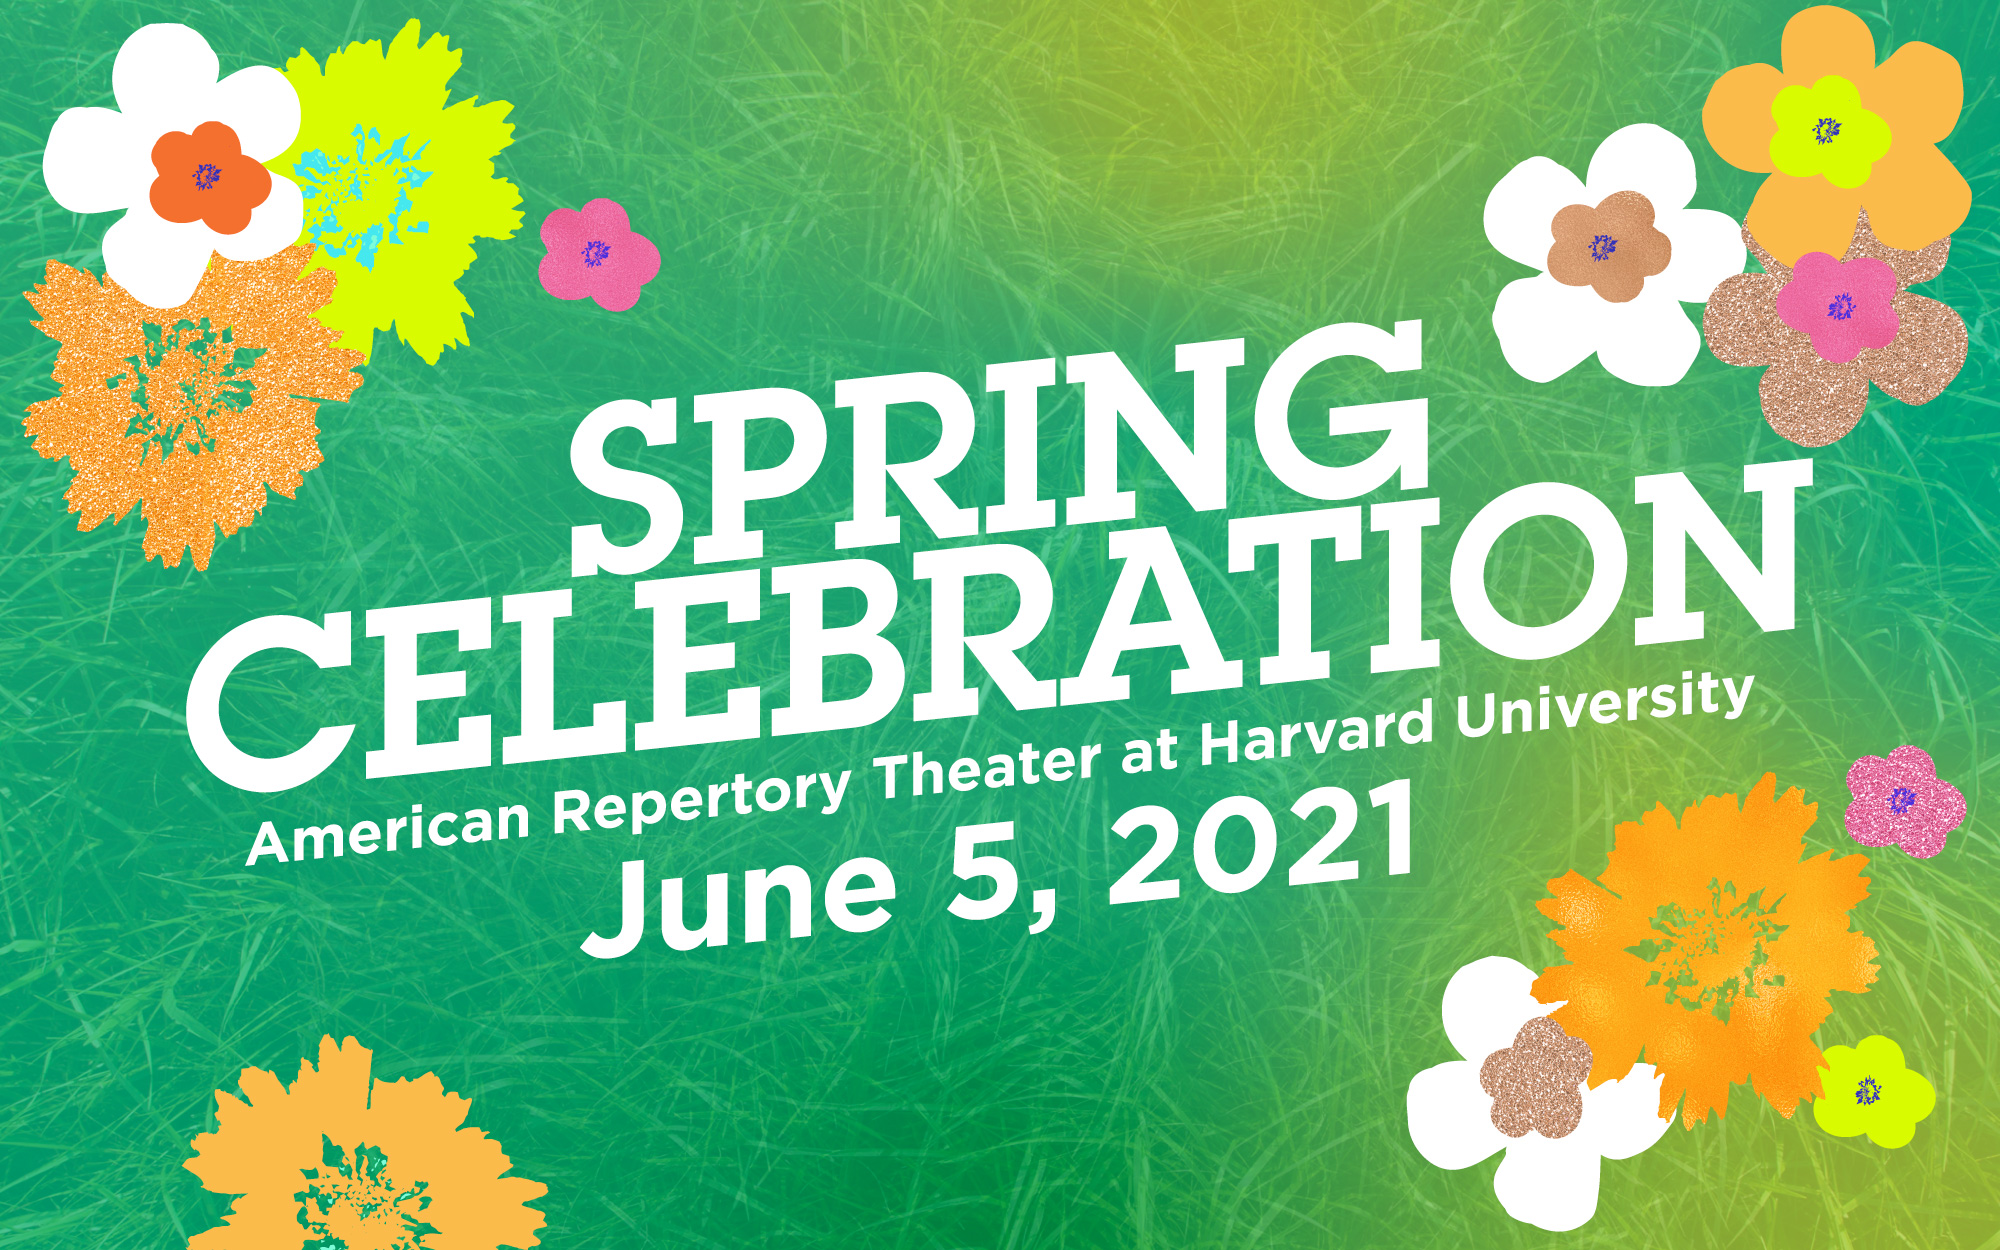 Spring Celebration American Repertory Theater at Harvard University June 5, 2021